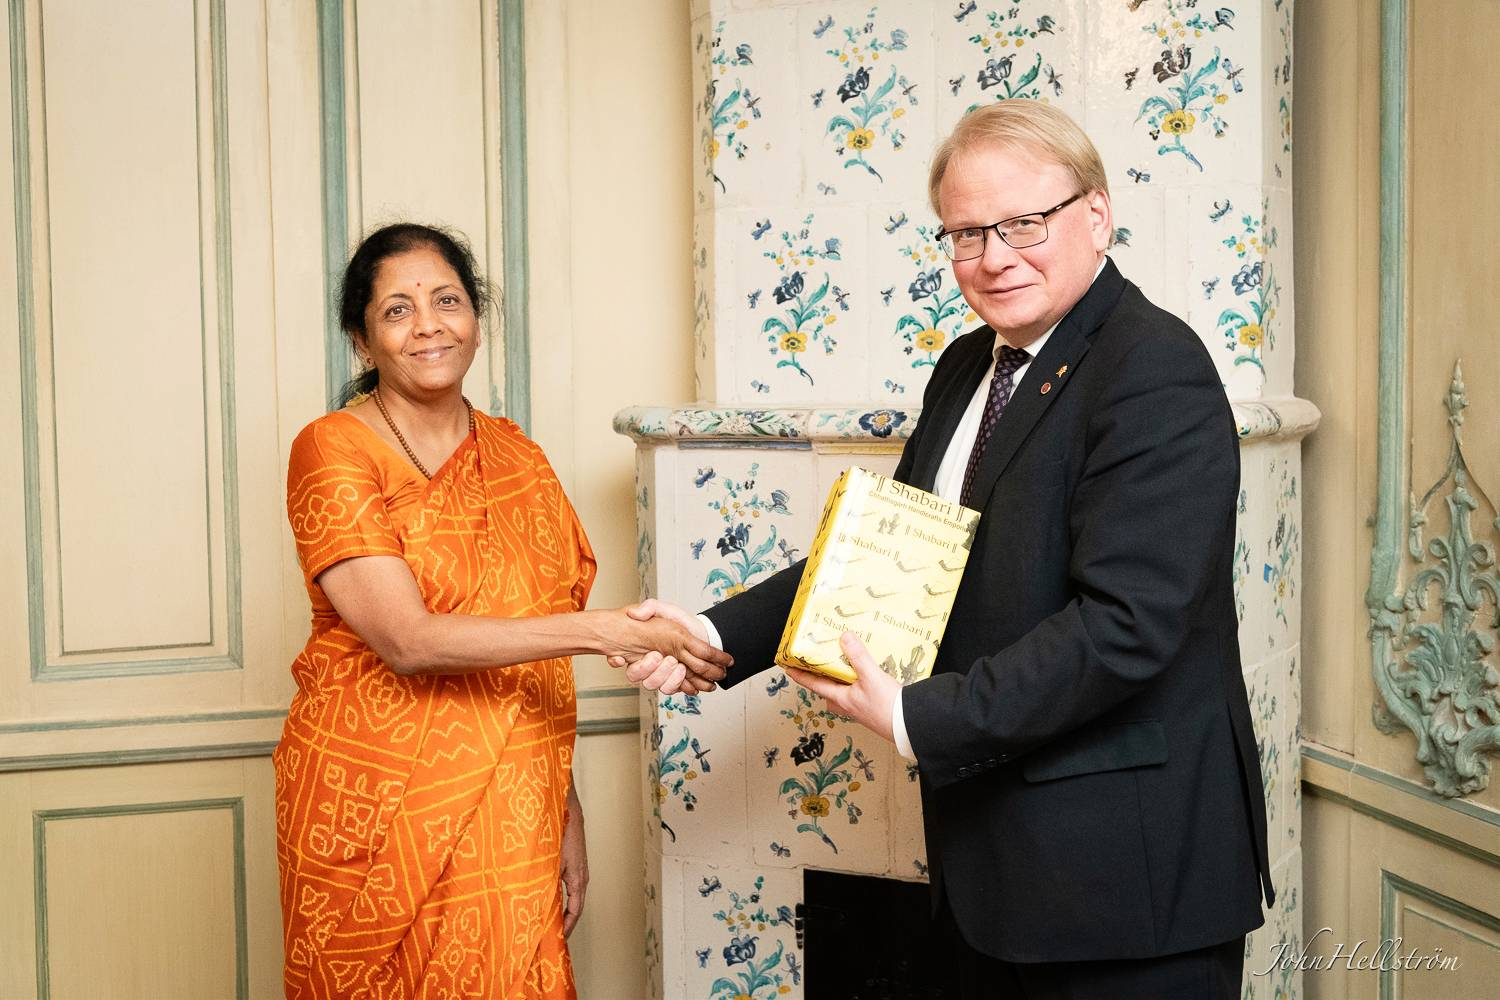 Embassy-of-India-Defence-Minister-Sweden-77.jpg